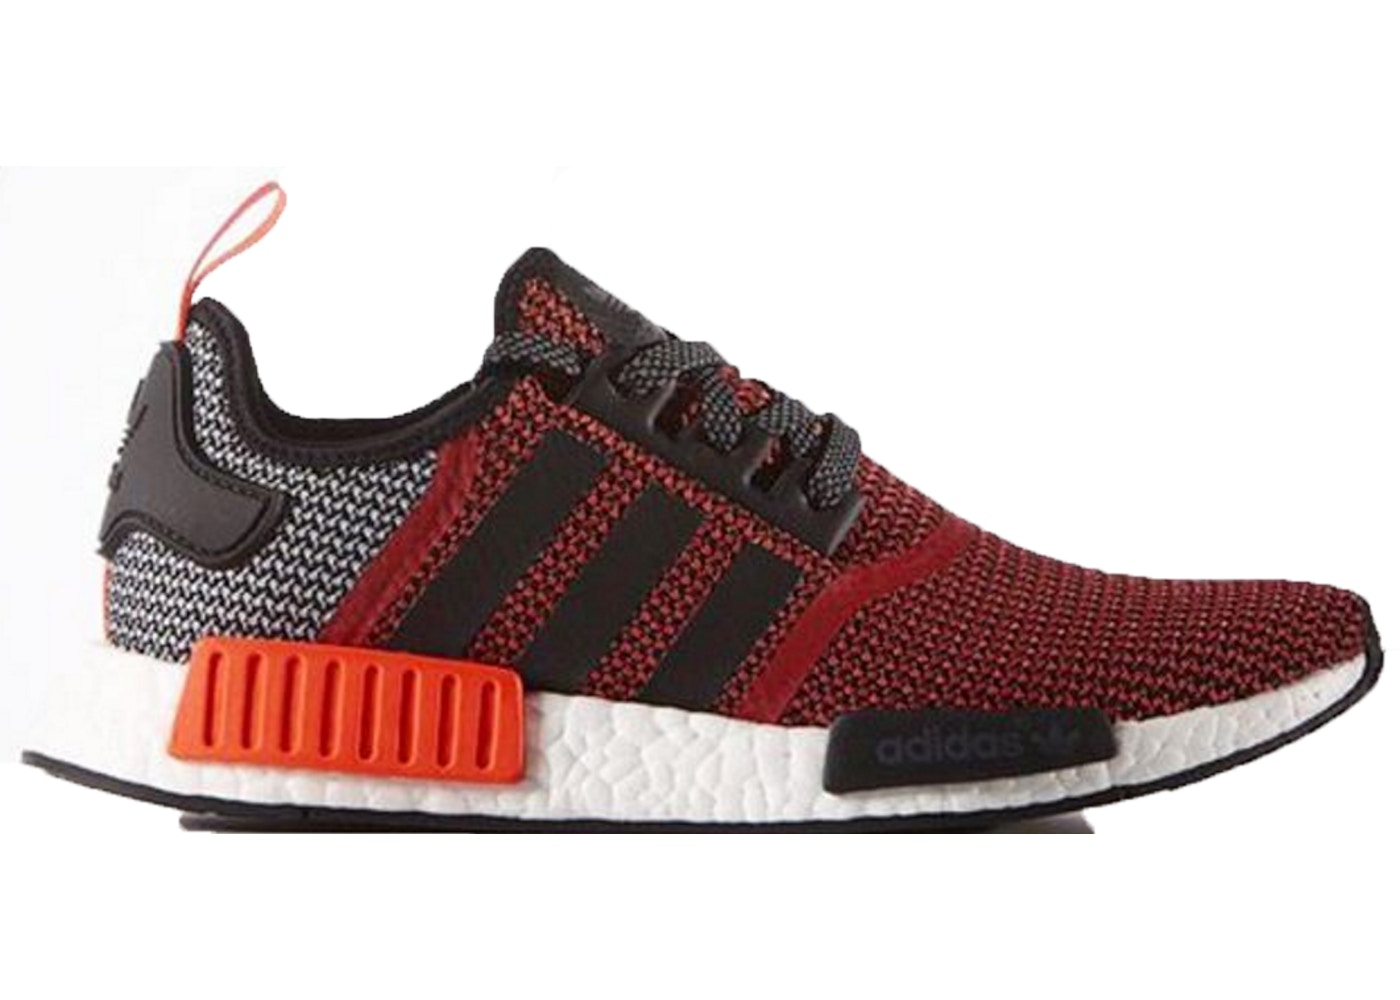 new product 08eae 4aaf4 adidas NMD R1 Lush Red